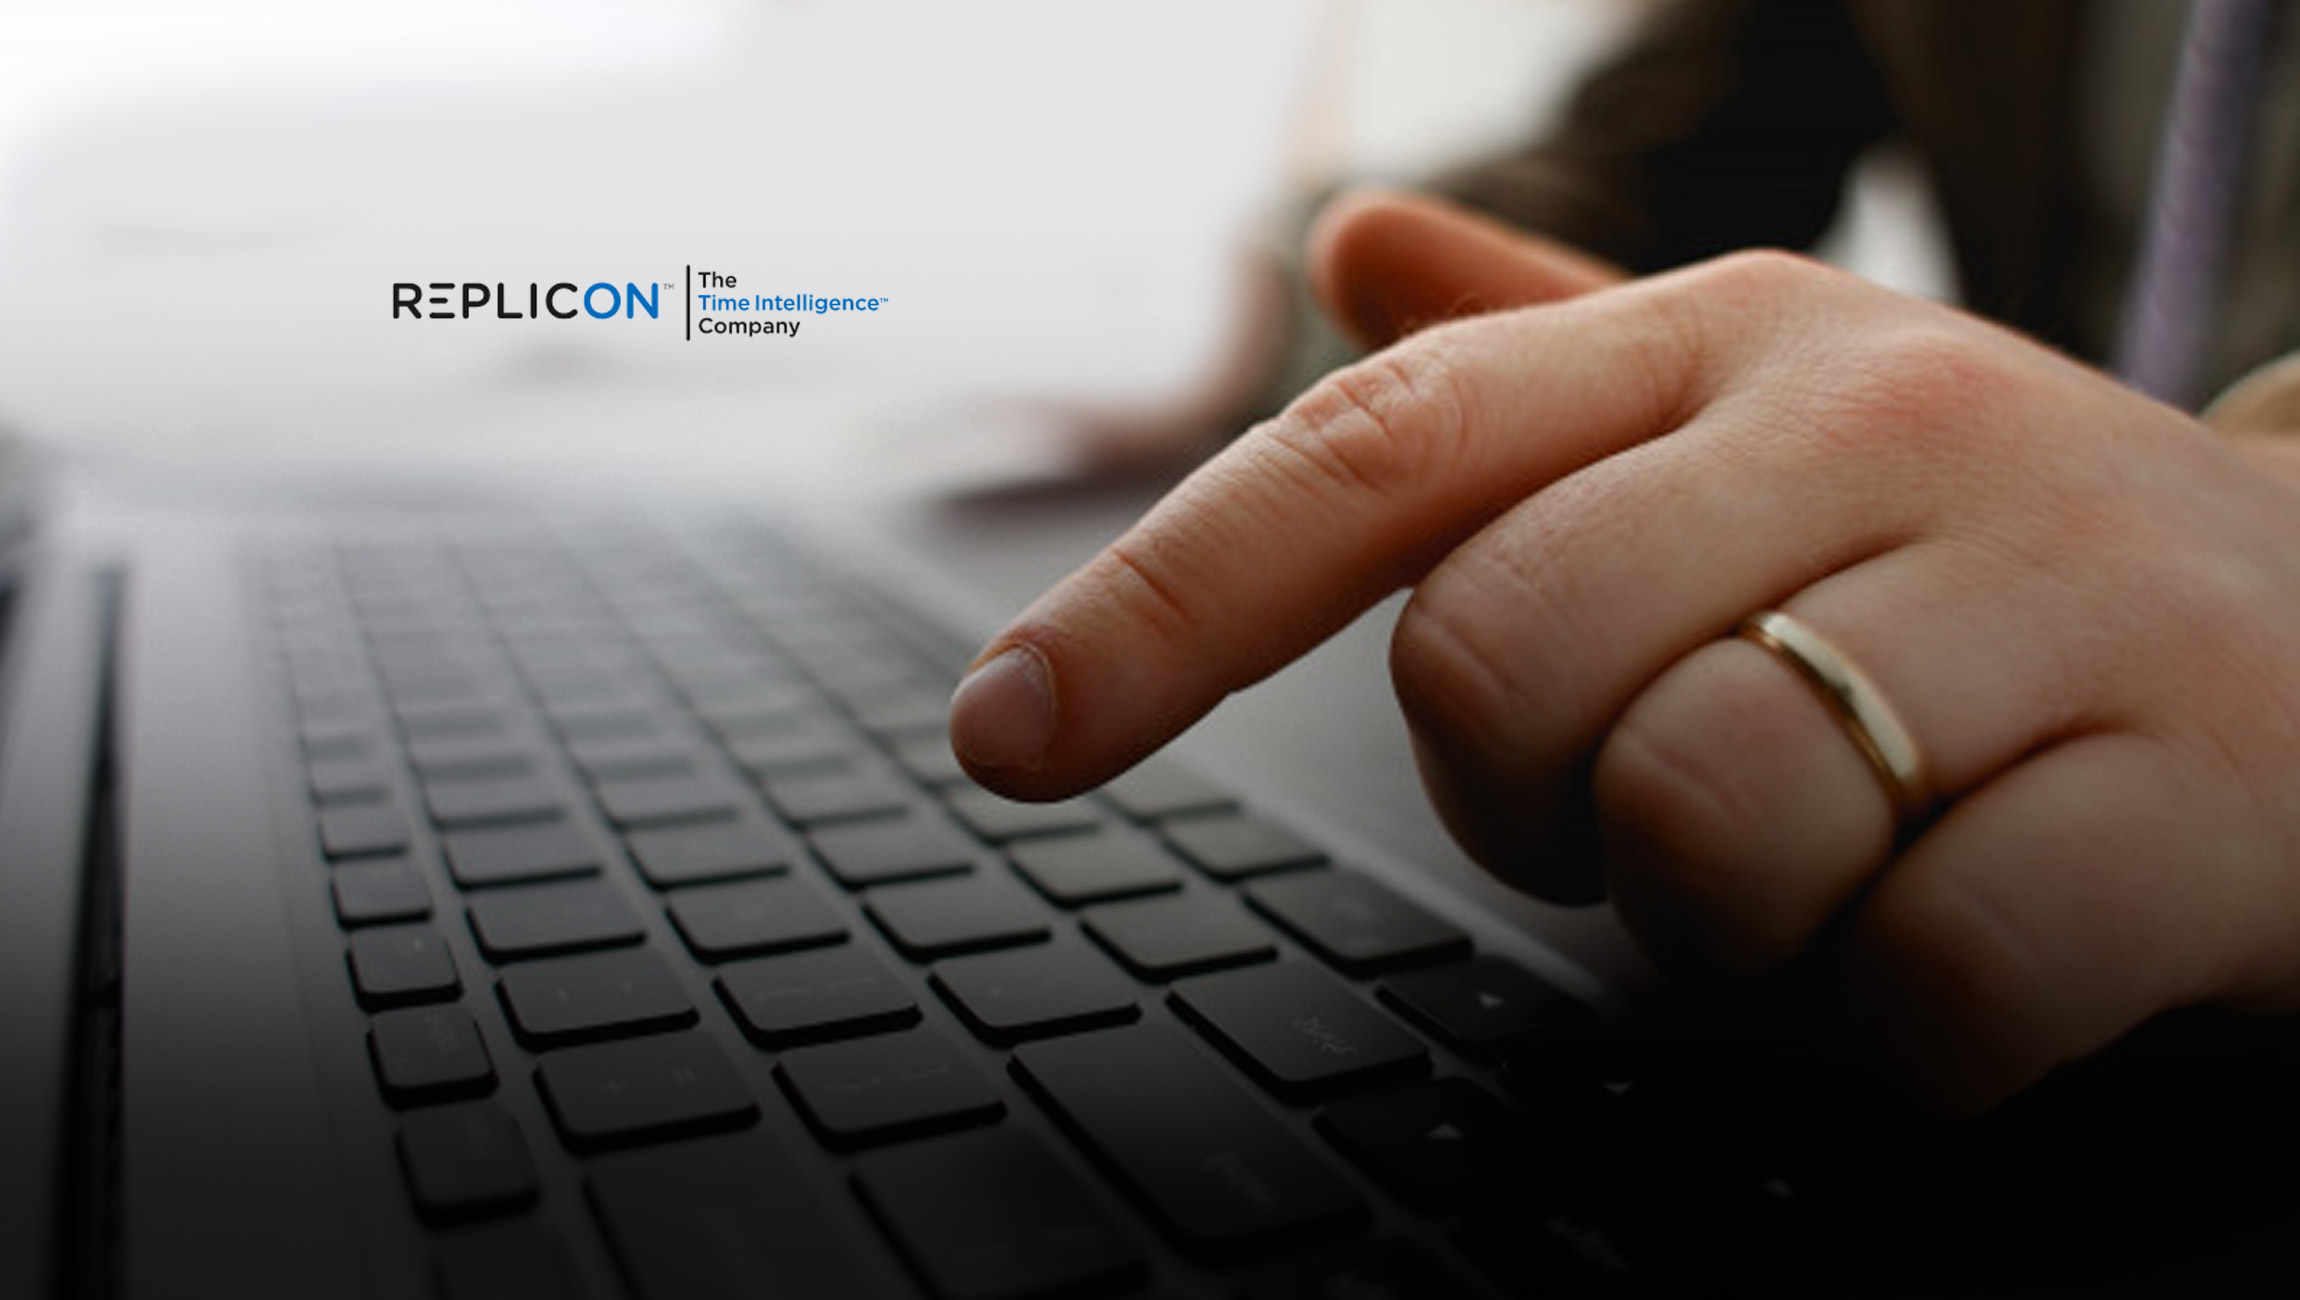 Replicon Announces Time Intelligence Platform for Cloud-based Solutions from SAP for the Professional Services Industry